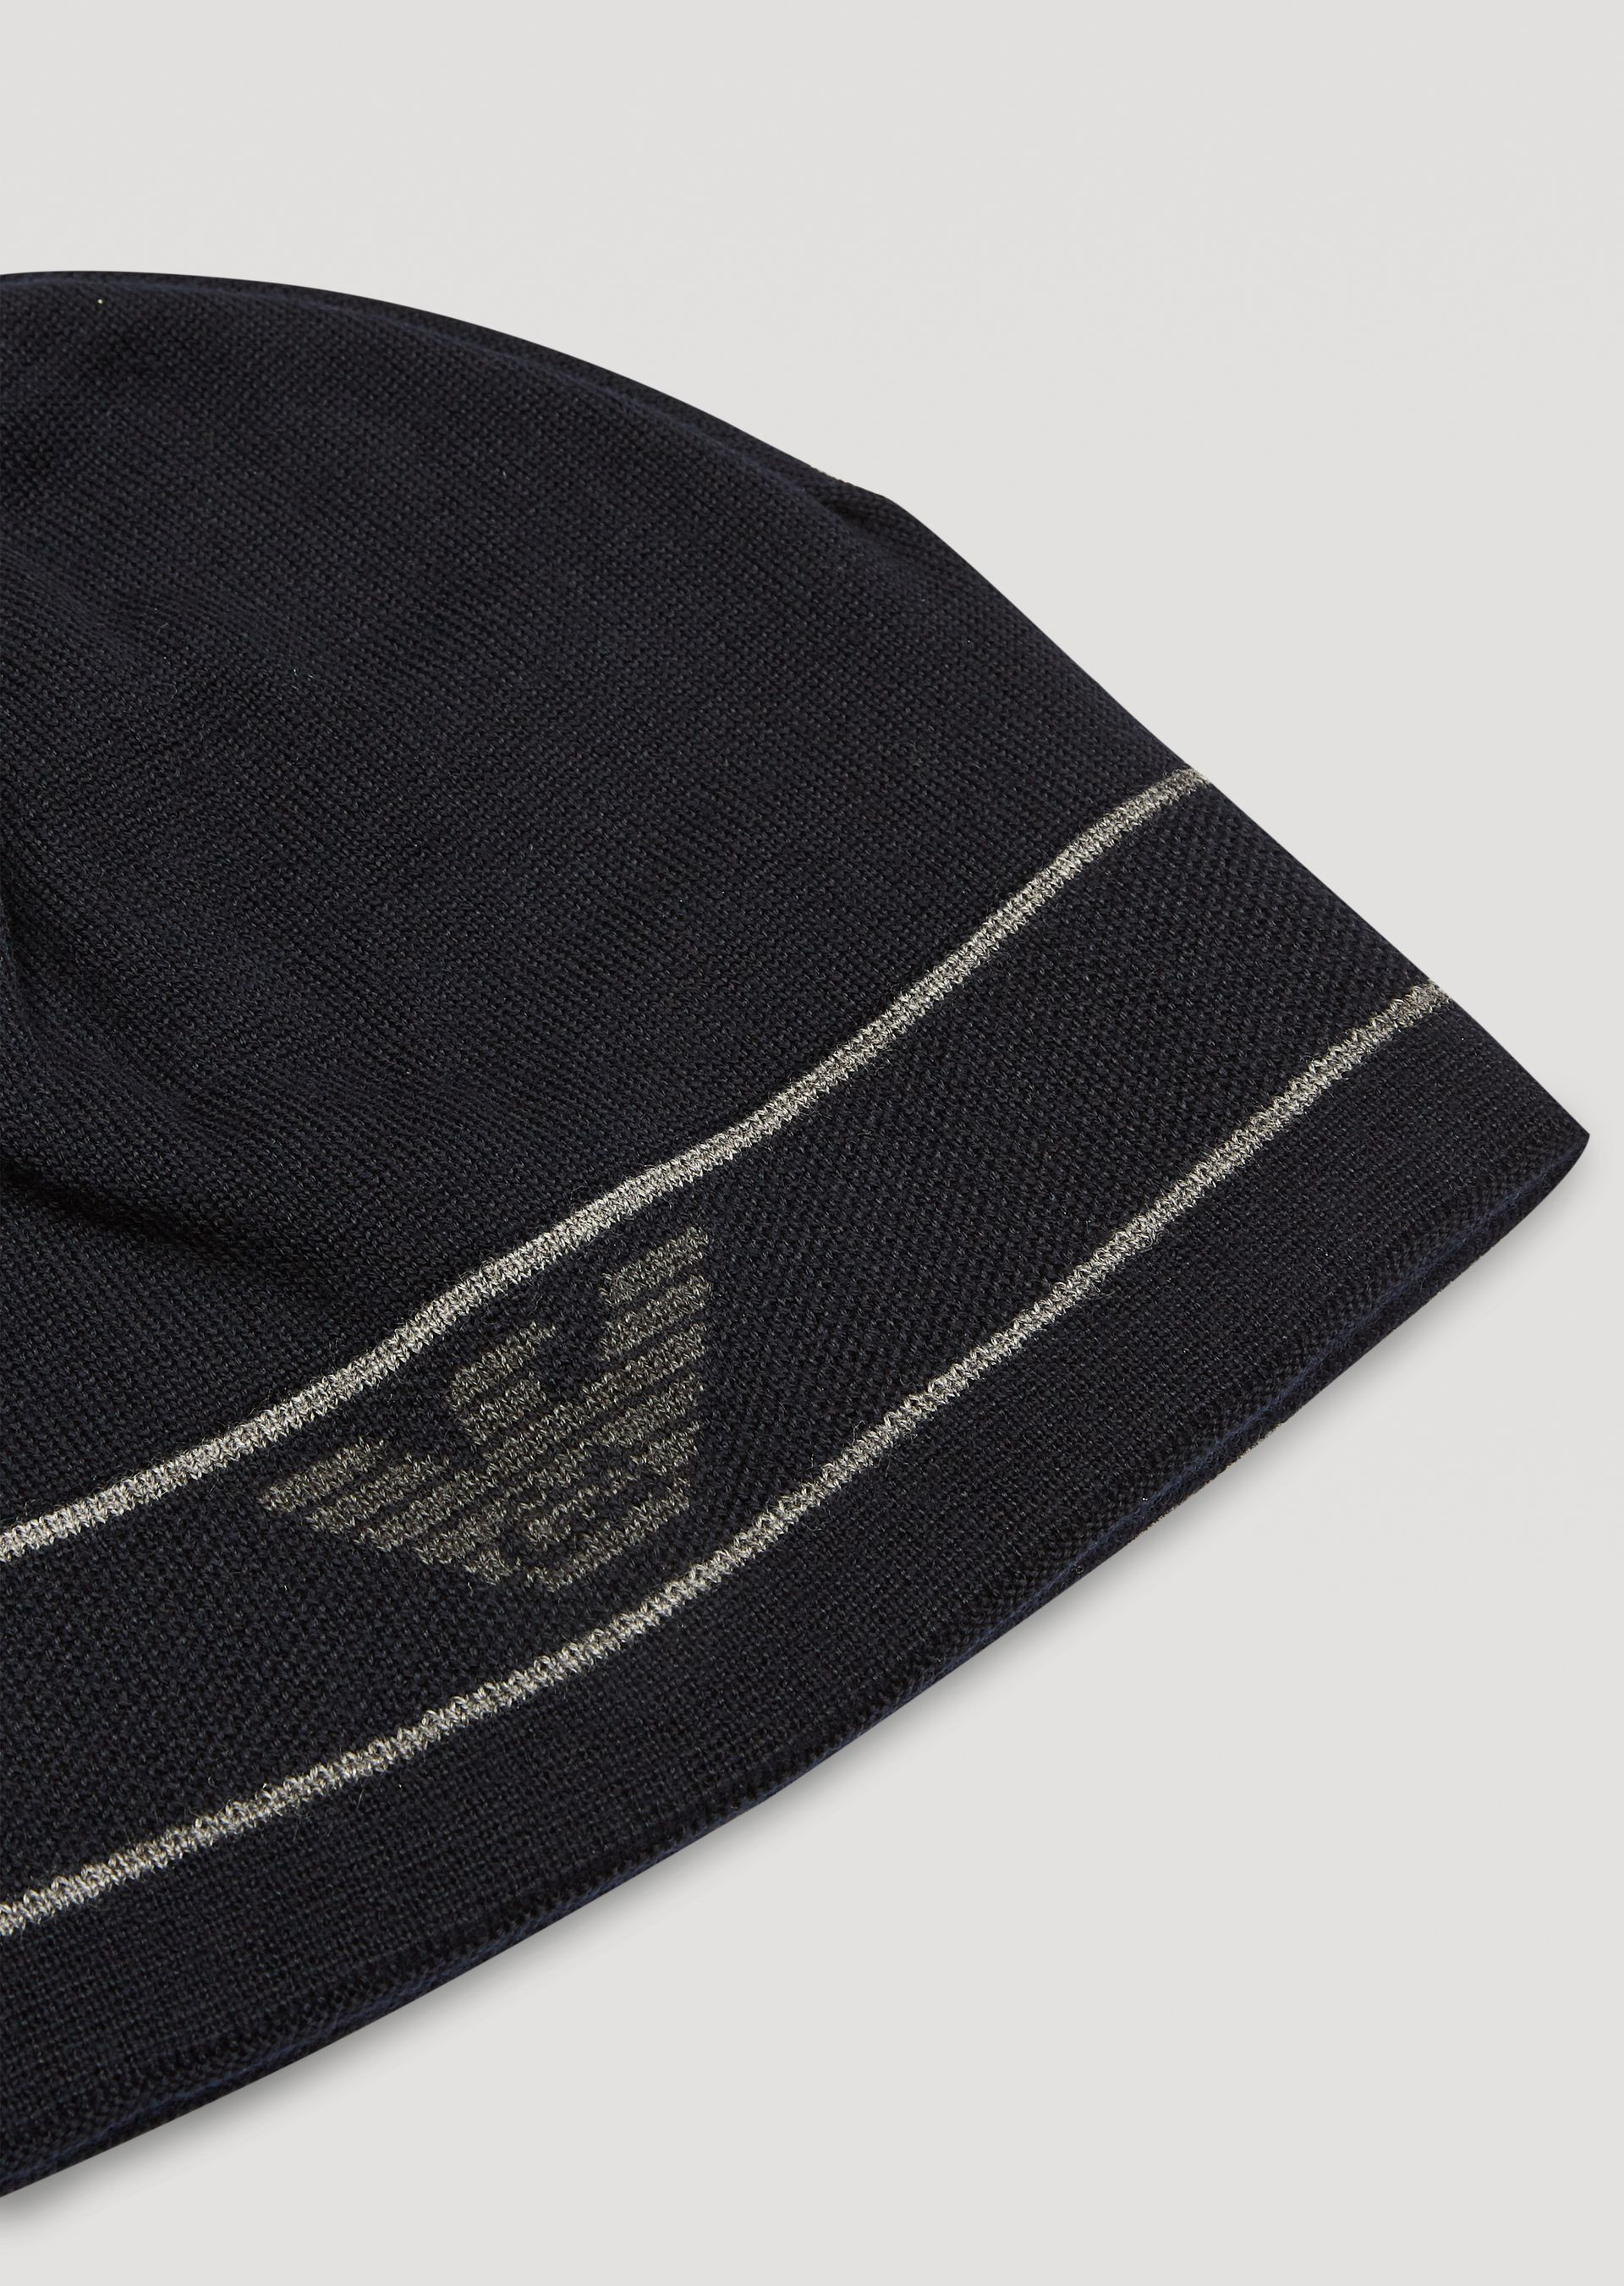 0ad419871f9 Emporio Armani Reversible Knitted Hat With Logo - Anthracite M ...